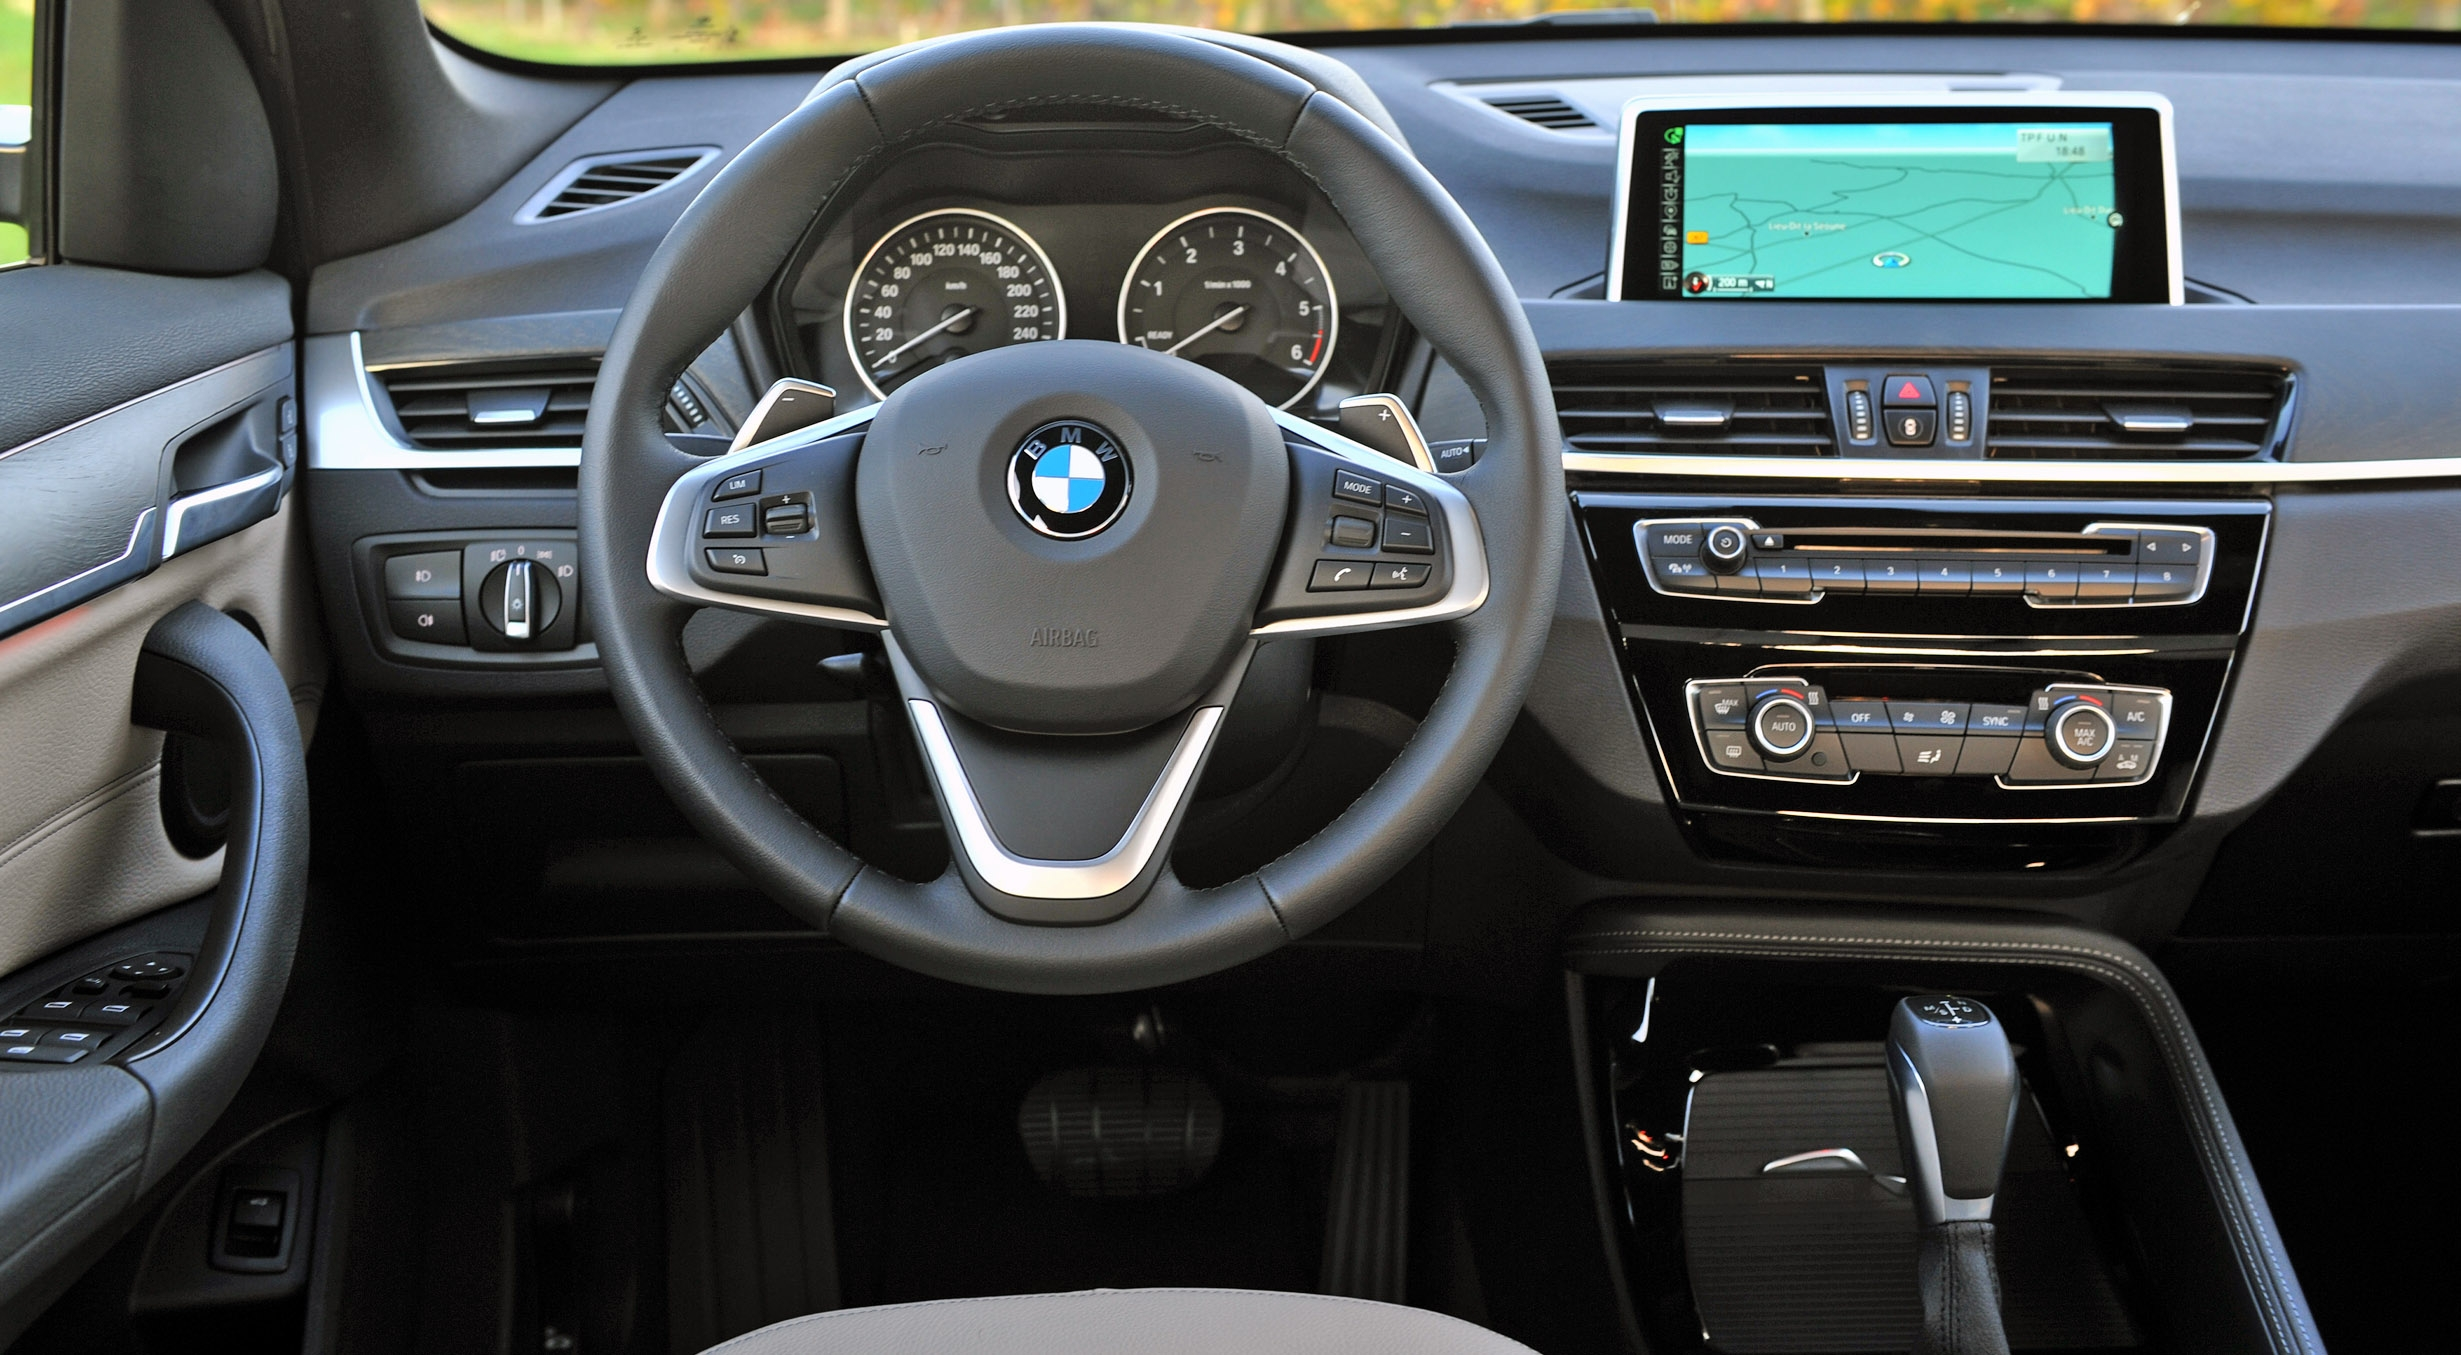 Quelle bmw x1 choisir for Interieur x1